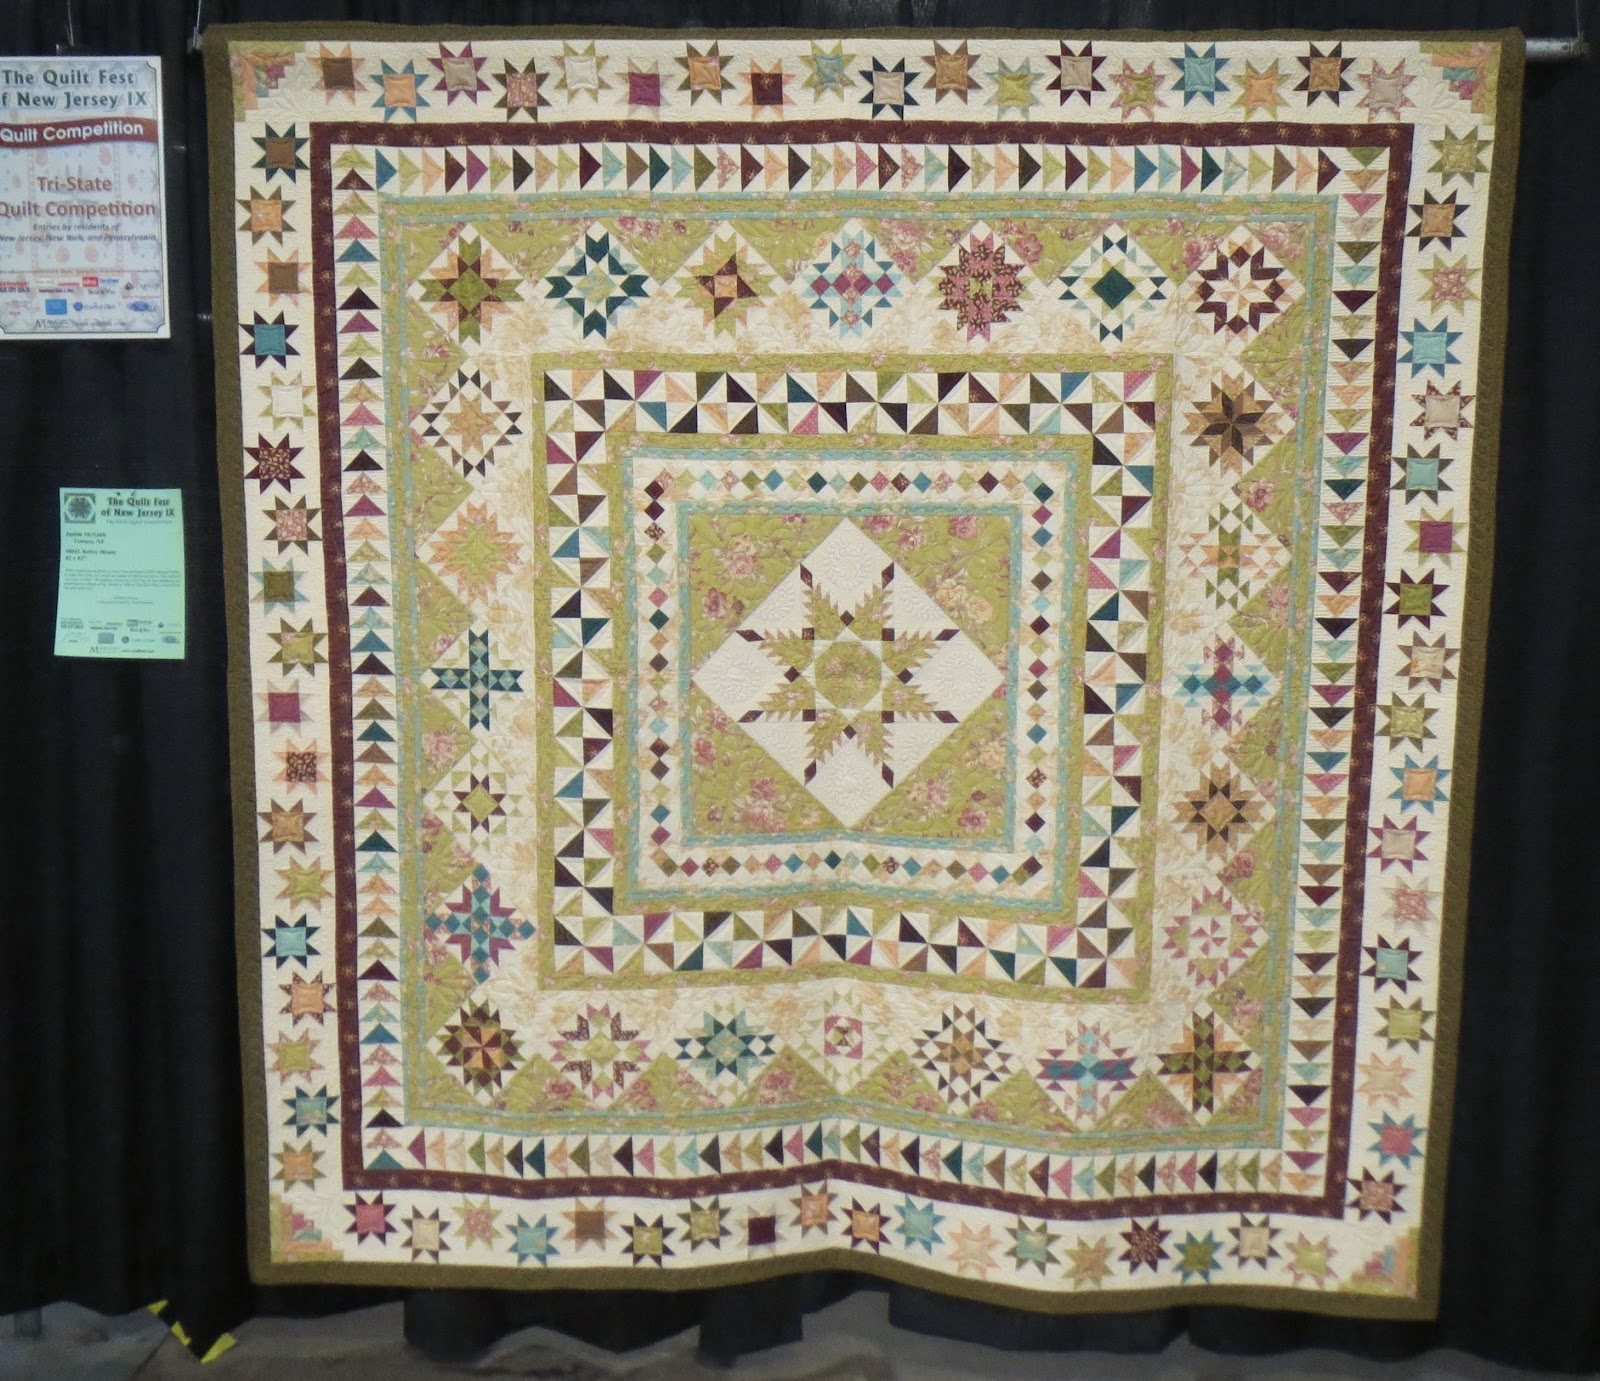 Quilting on Main Street: The Quilt Fest of New Jersey